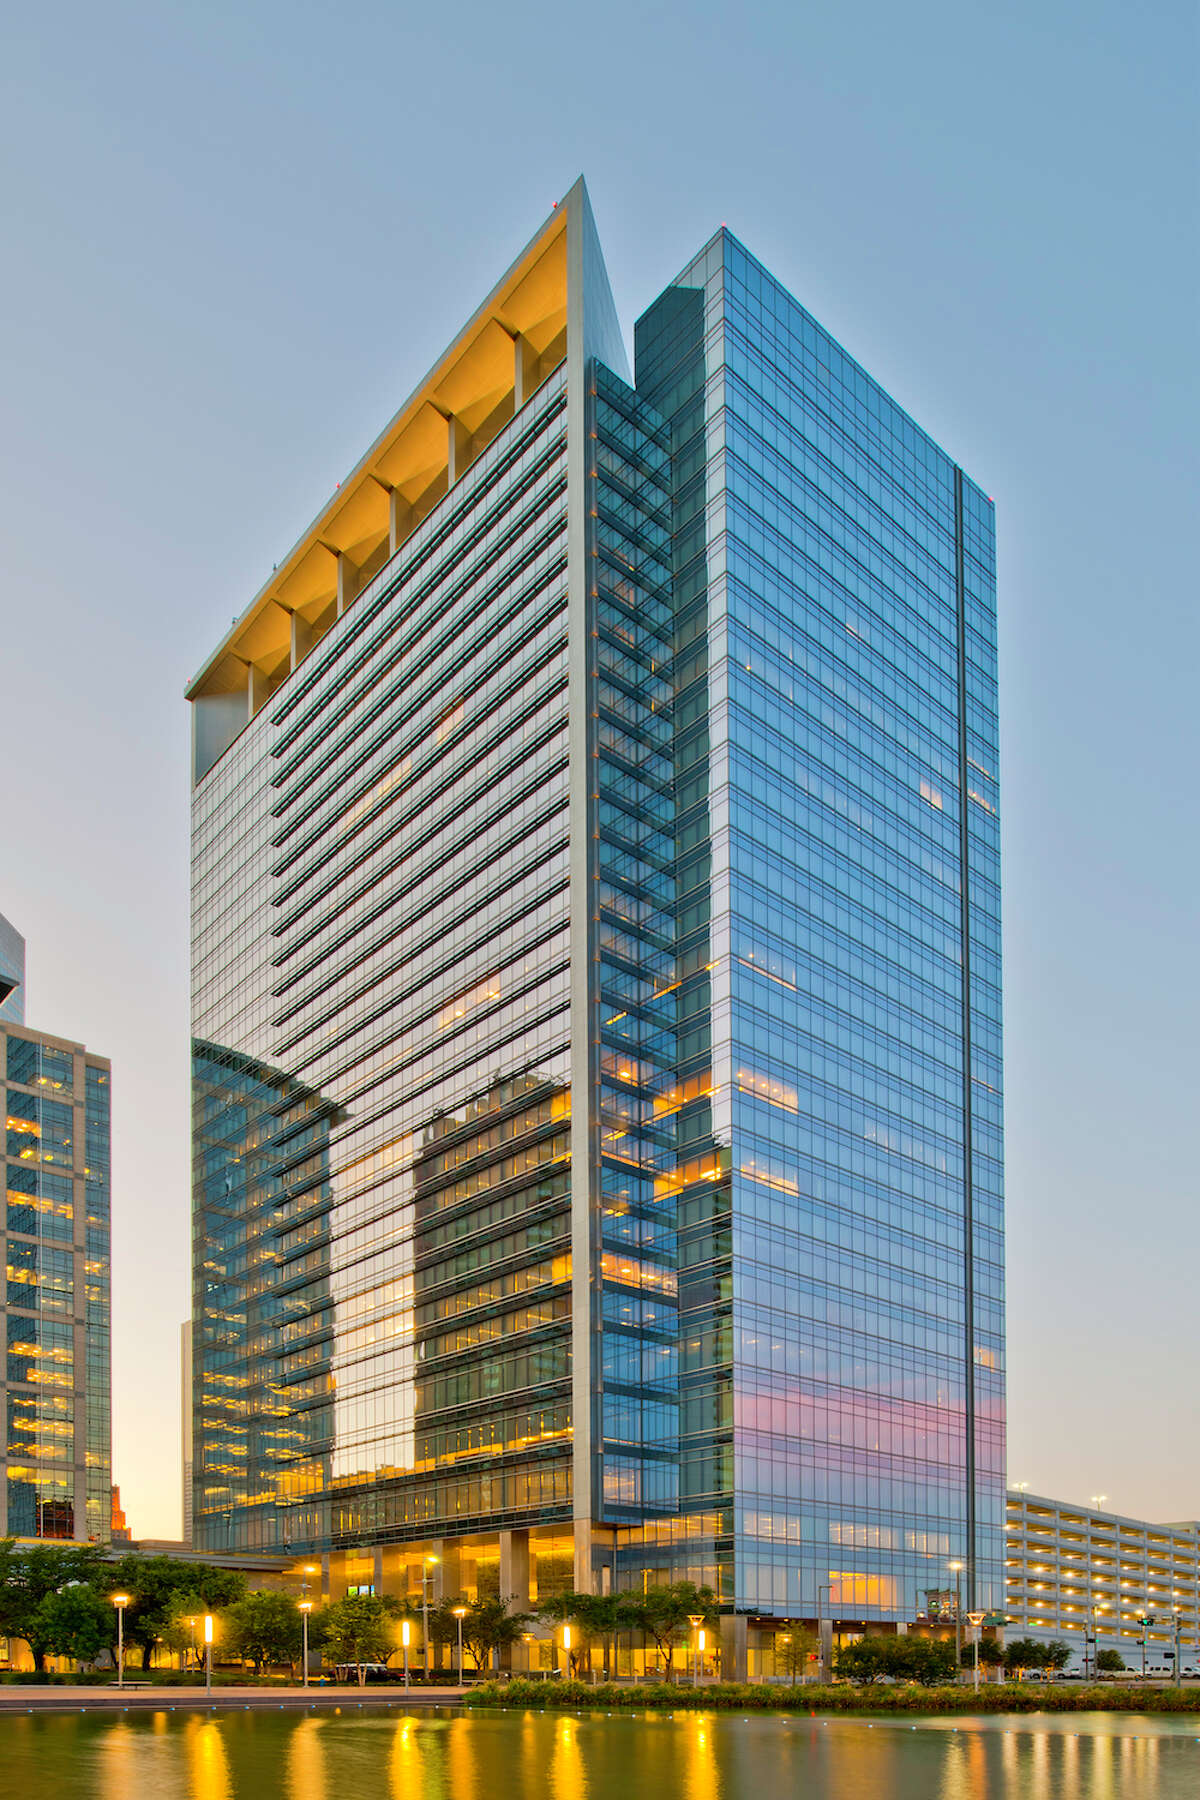 Hess Tower in downtown Houston was awarded the International TOBY (The Outstanding Building of the Year) Award